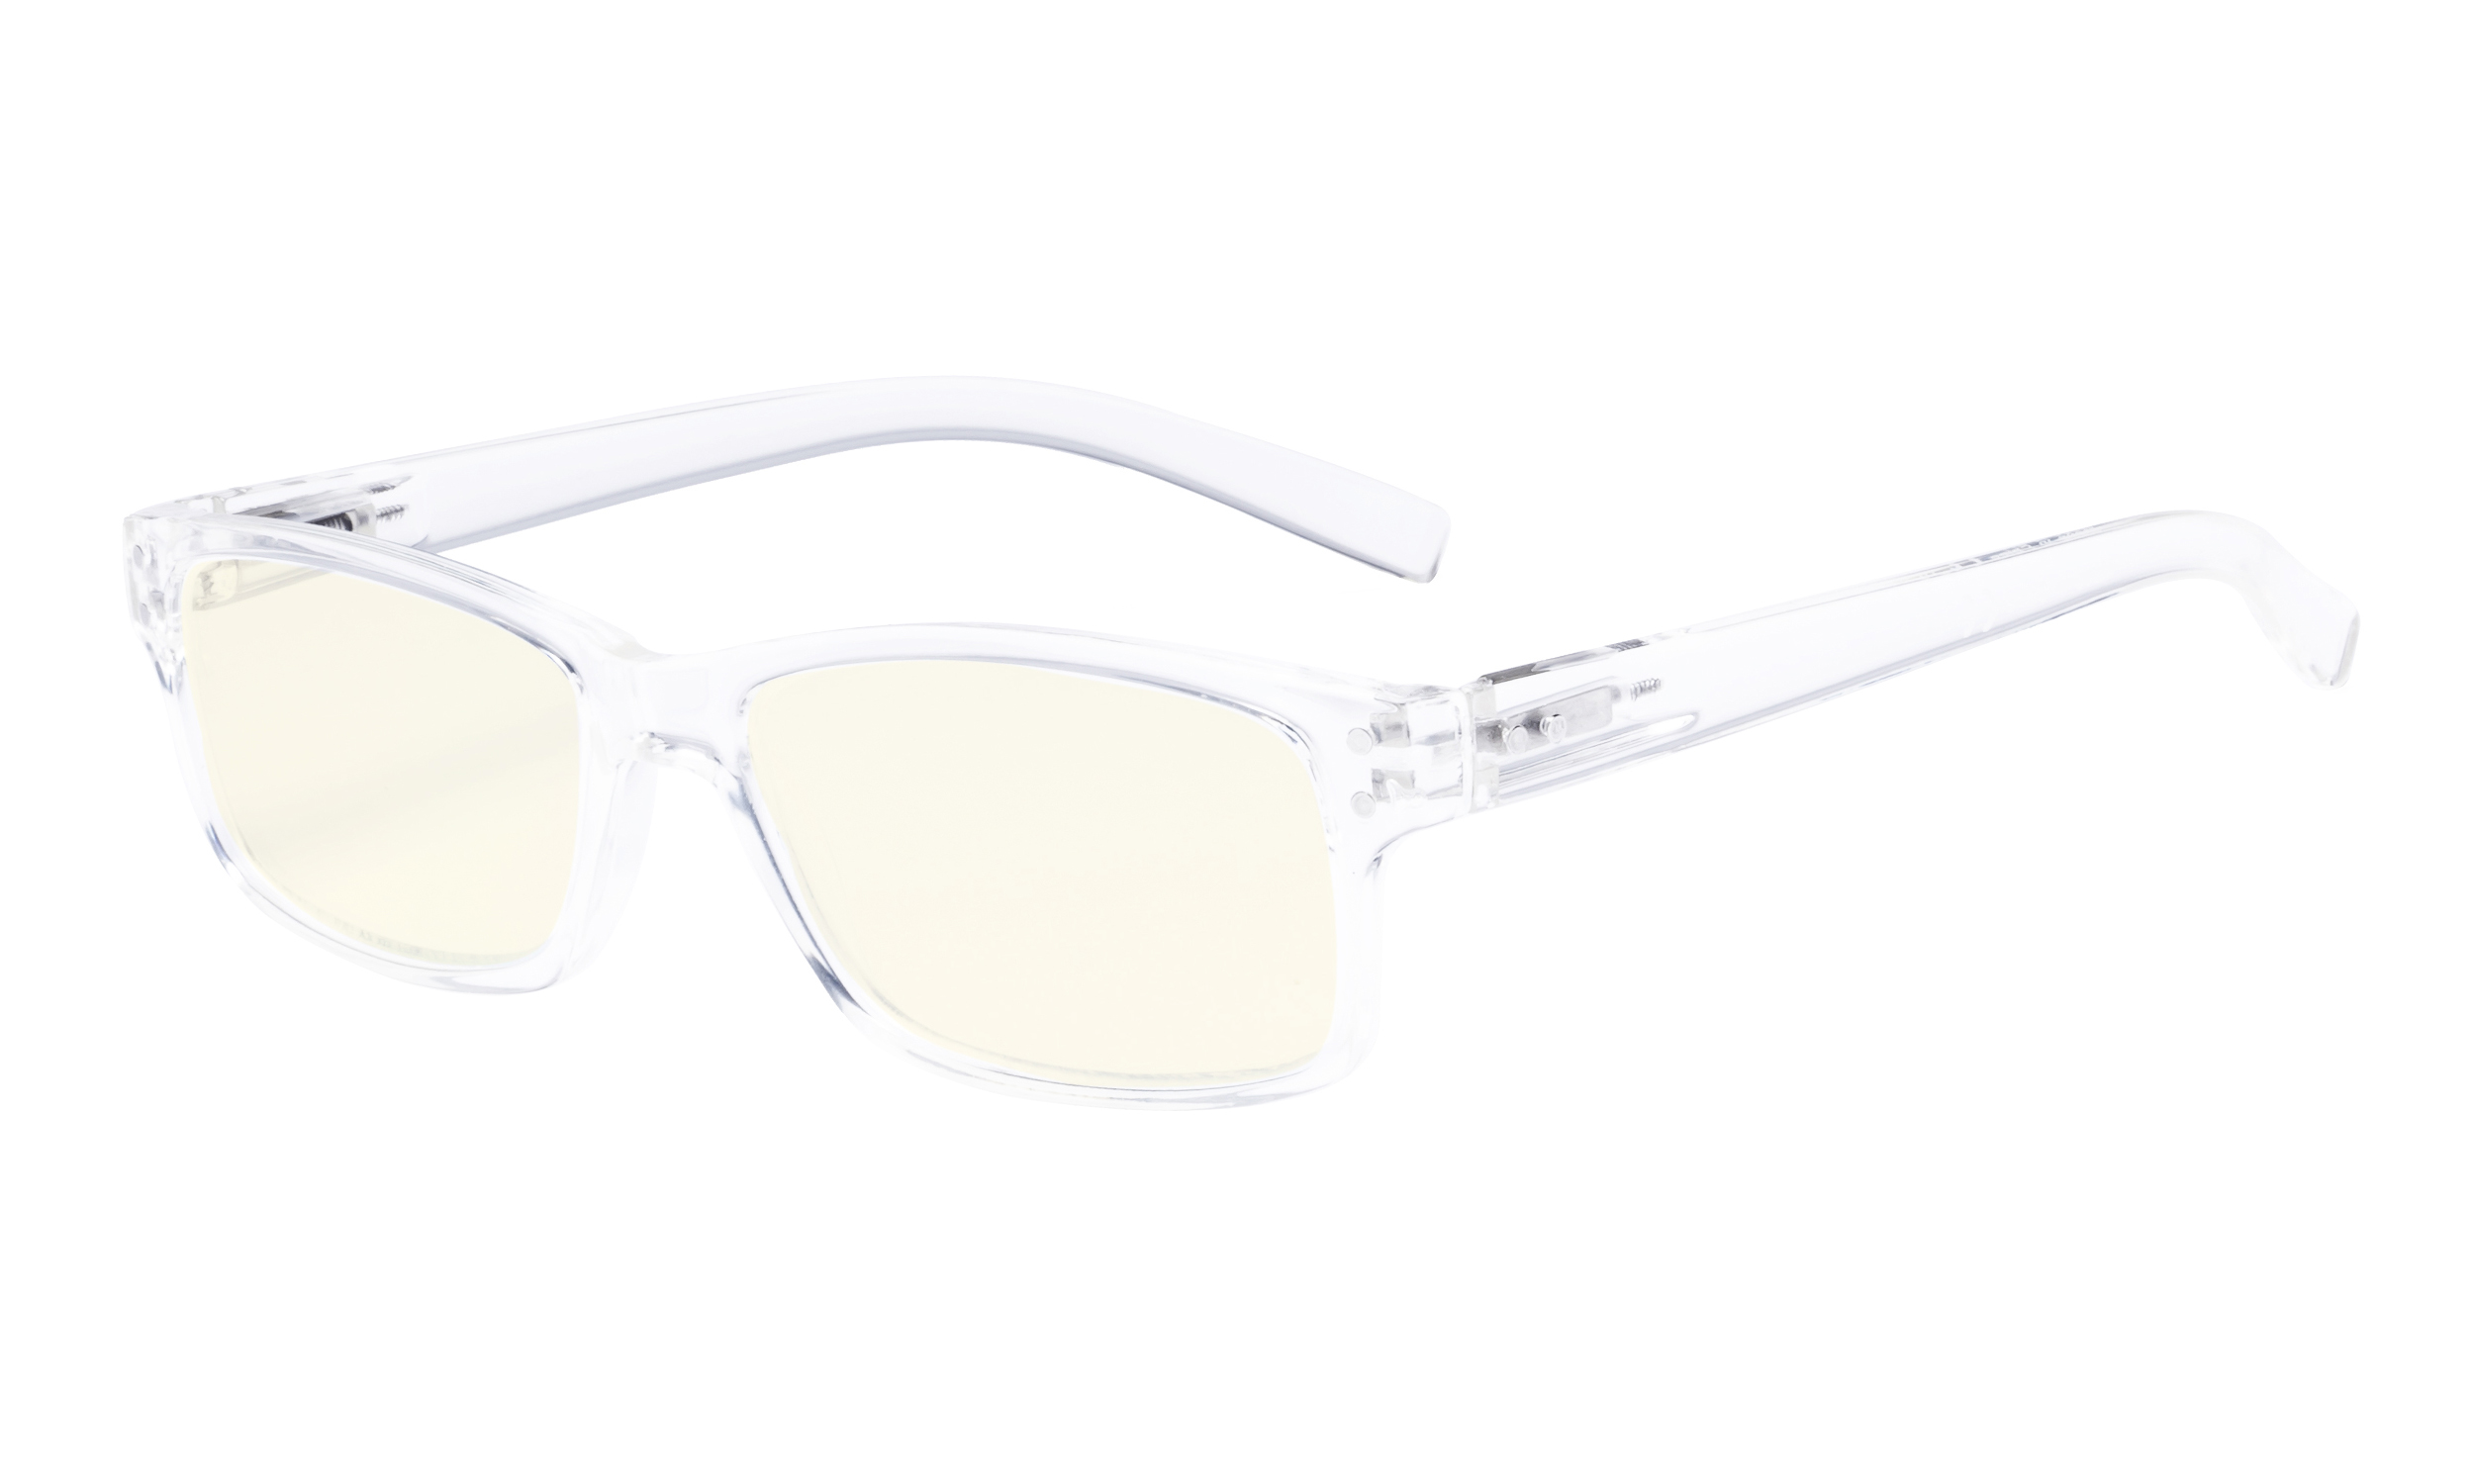 eyekepper computer glasses uv protection anti glare/blue rays readers  transparent frame cg032